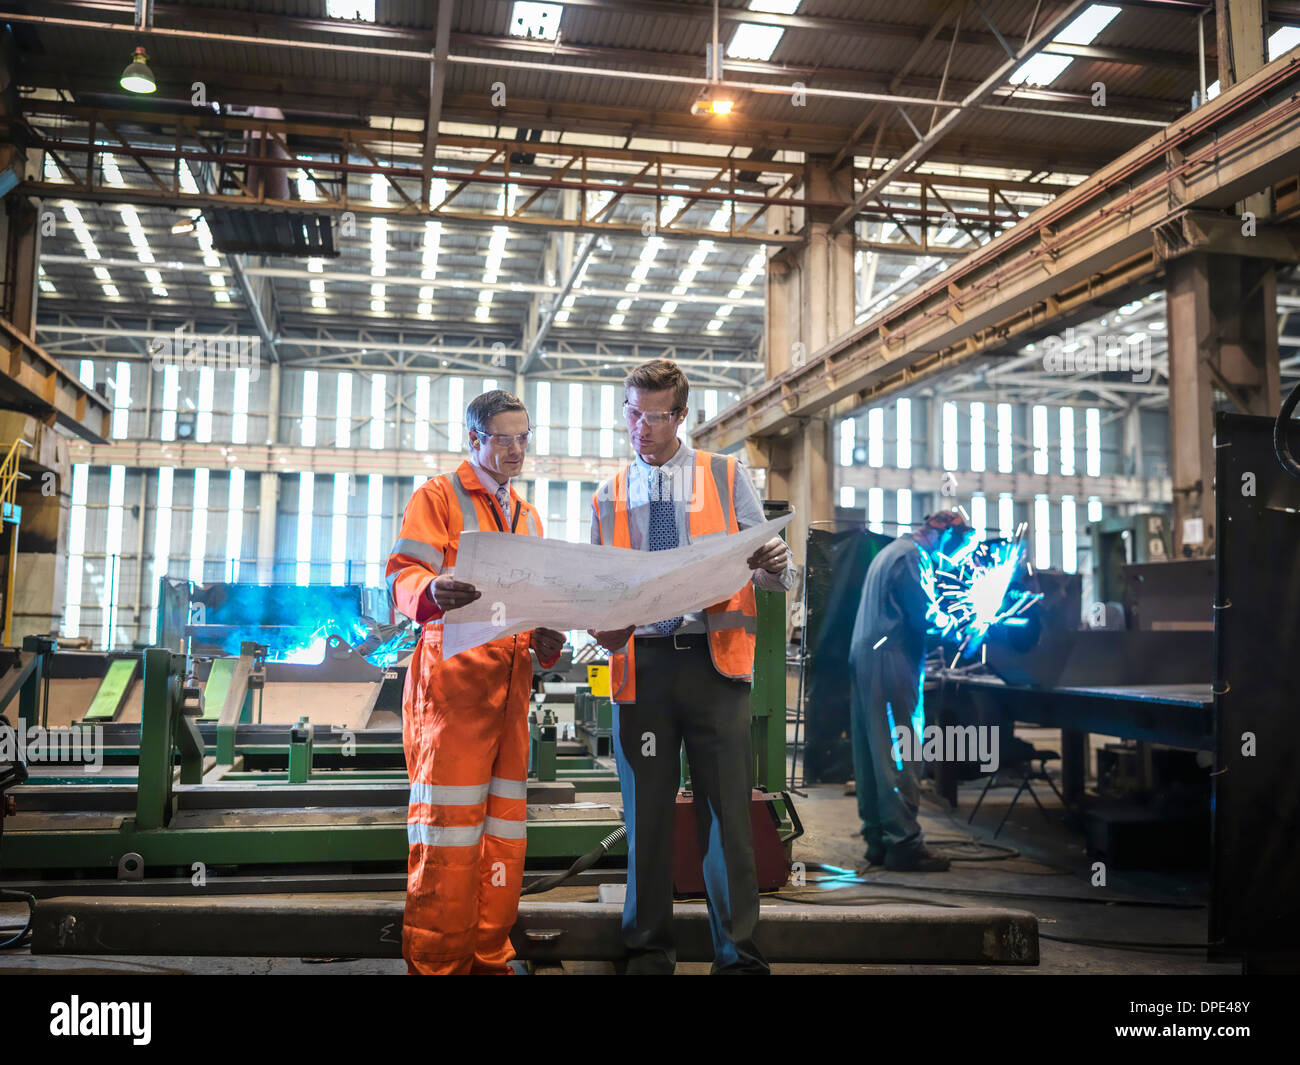 Engineers inspecting engineering drawings in factory - Stock Image